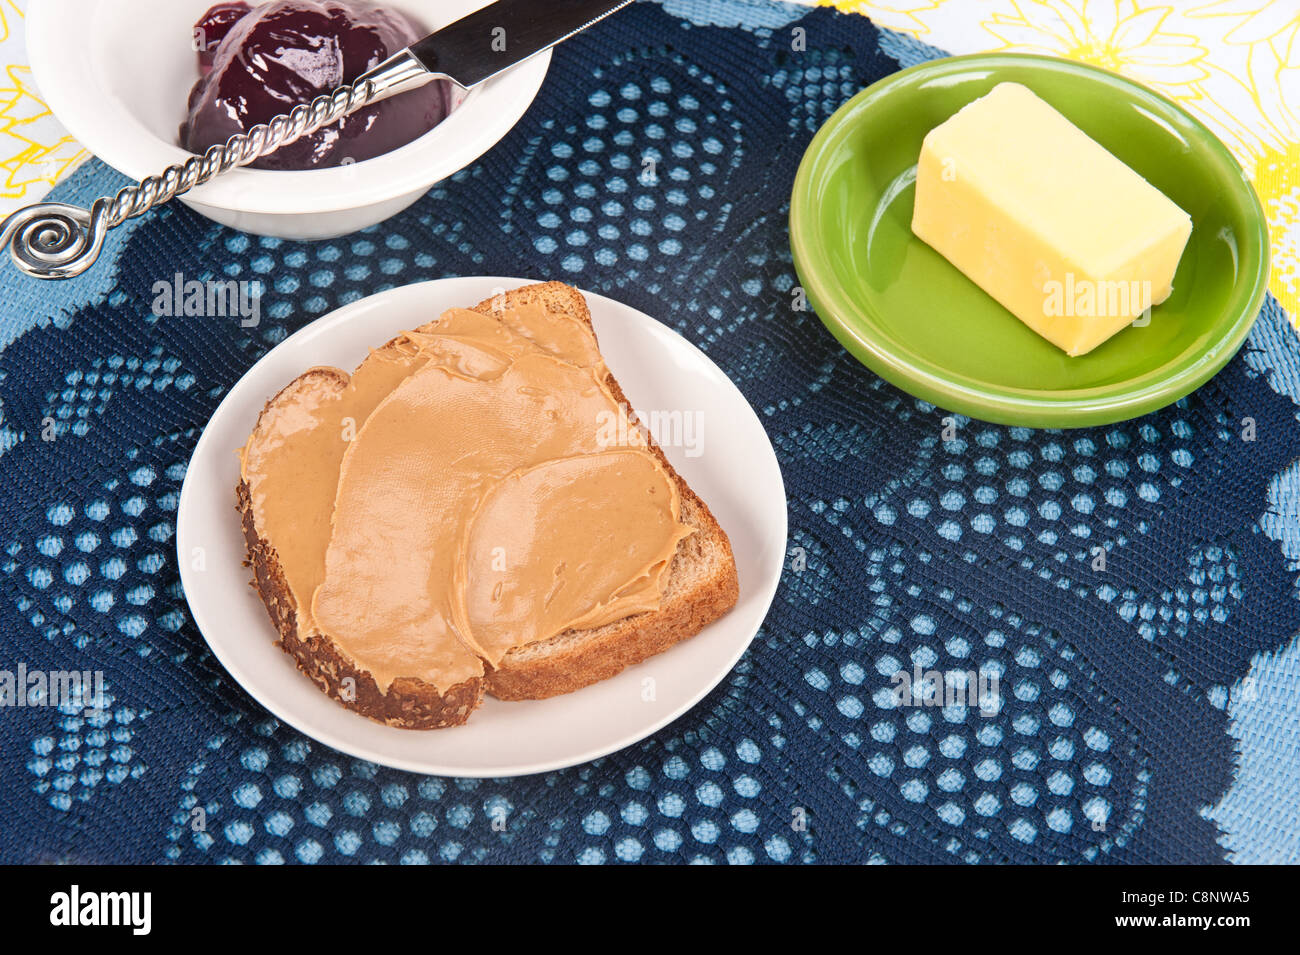 A setting of a peanut butter sandwich with jelly and butter - Stock Image